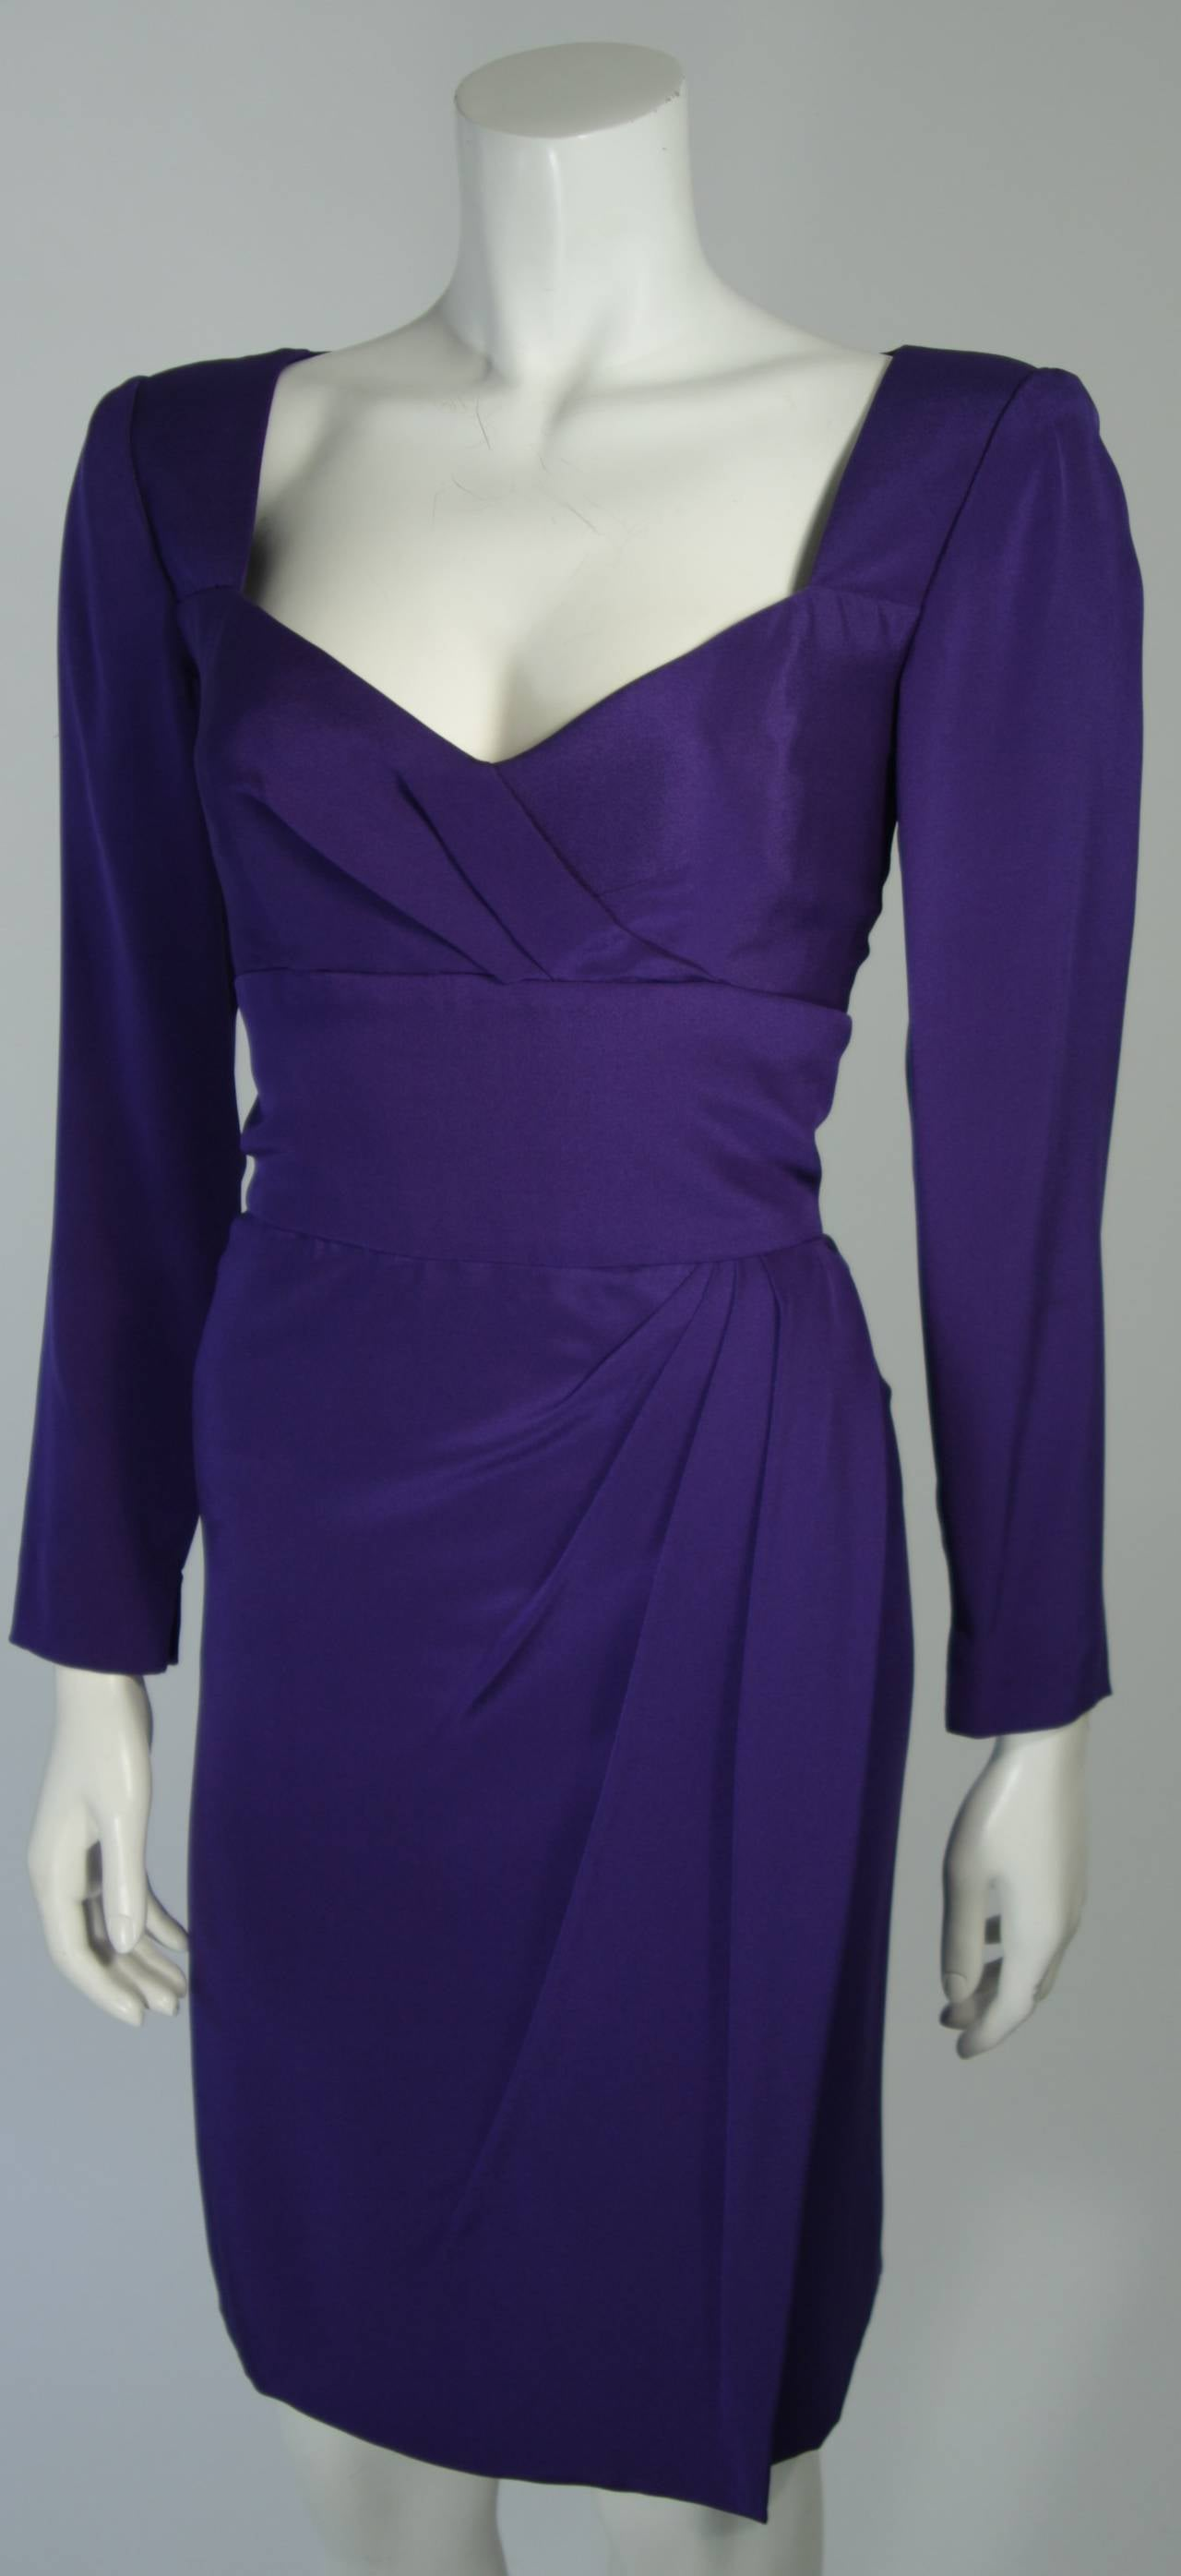 Travilla Purple Silk Long Sleeve Cocktail Dress with Draping Size 8 For Sale 1